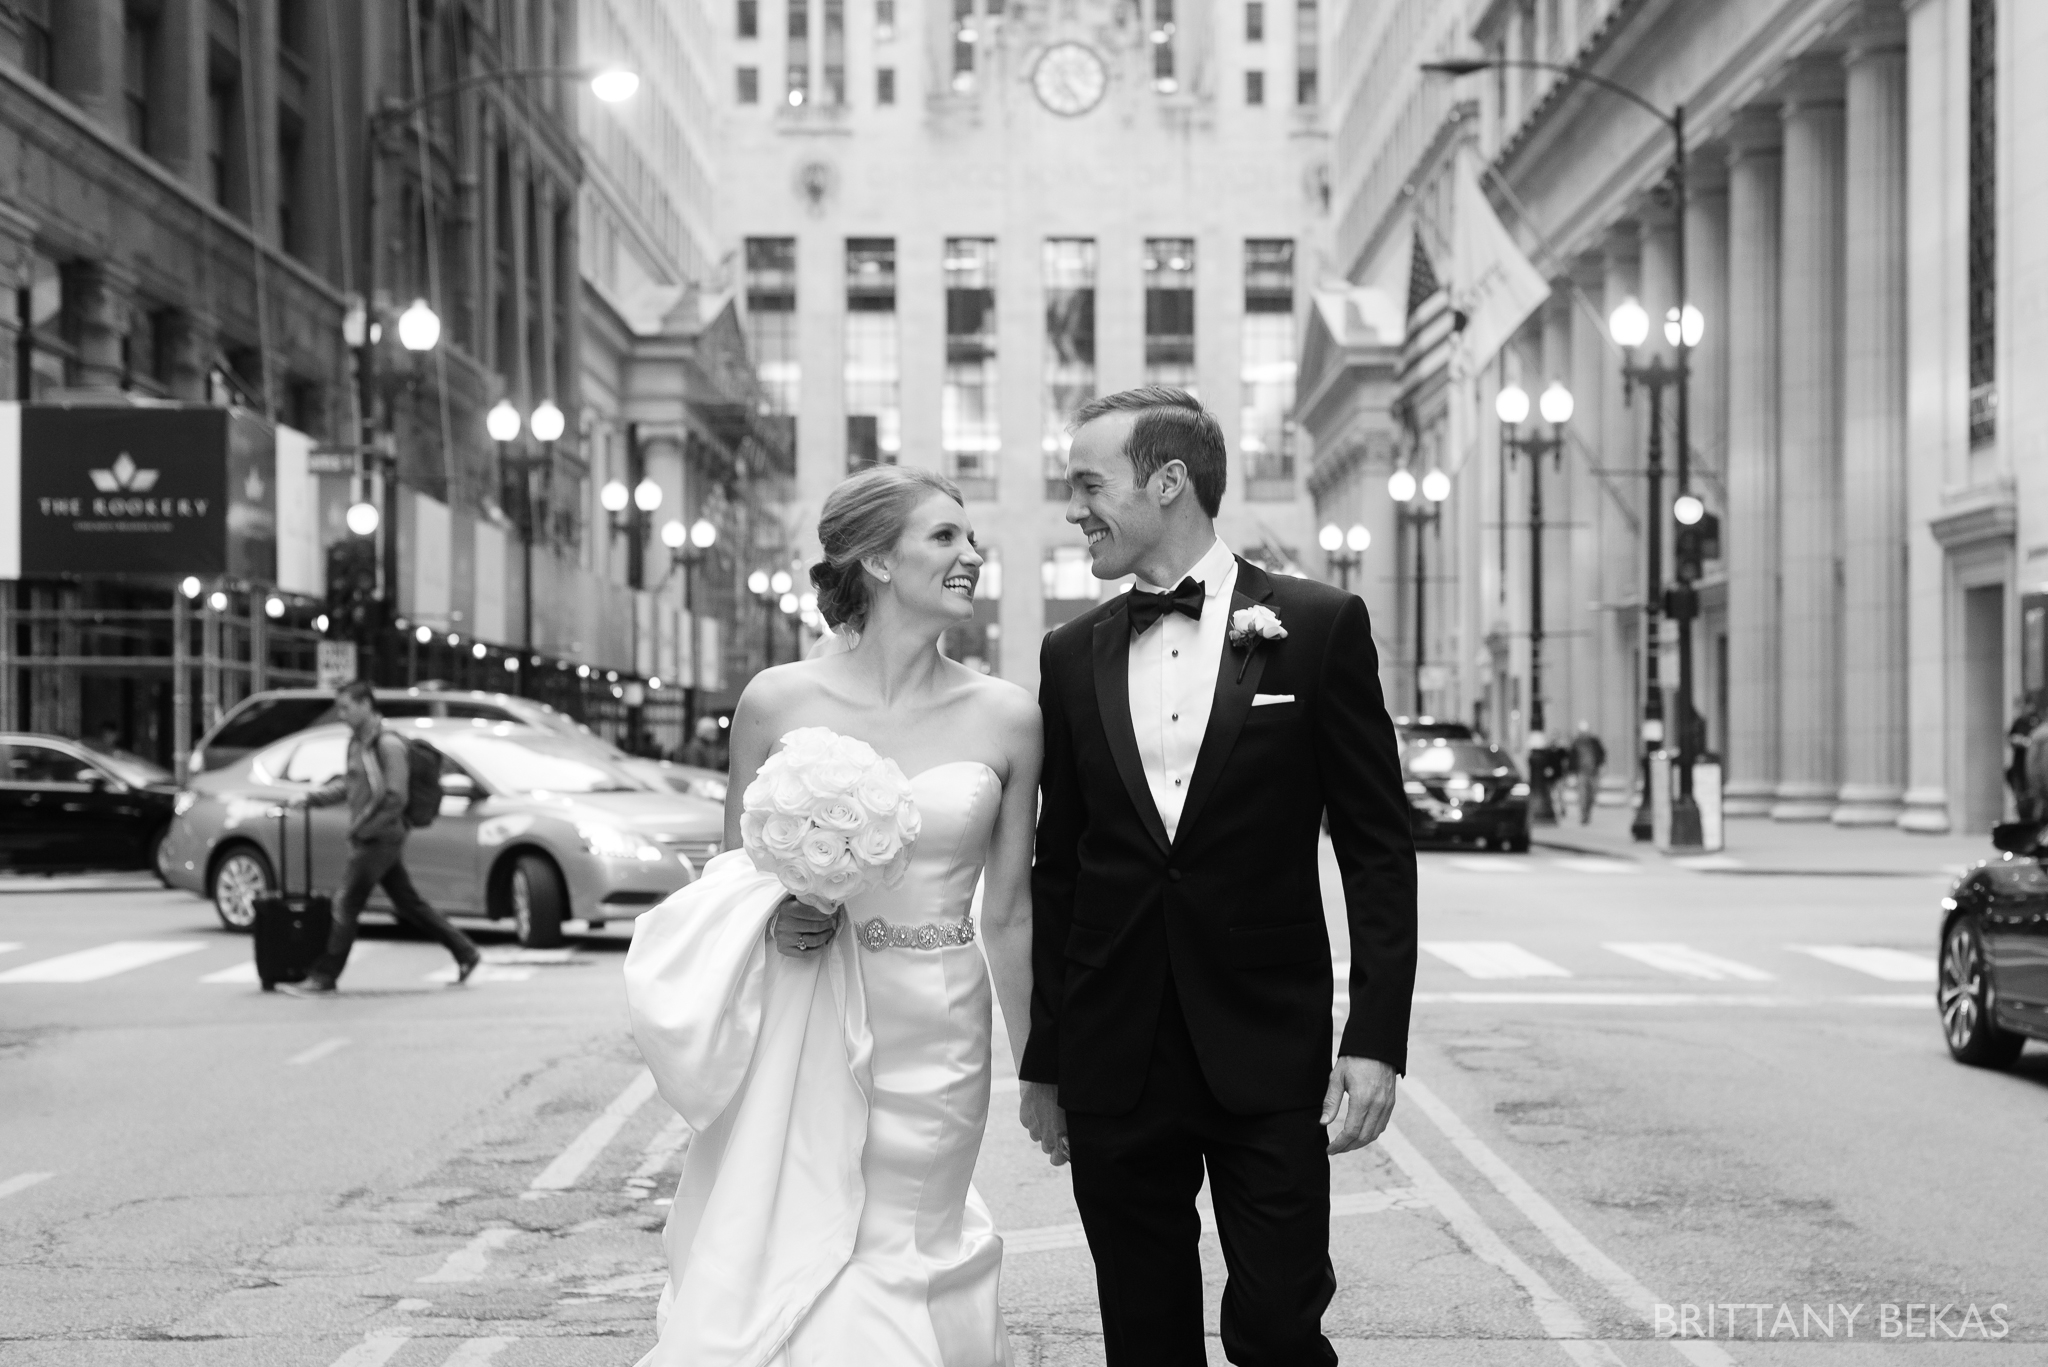 Chicago Wedding Hotel Allegro Wedding Photos - Brittany Bekas Photography_0017